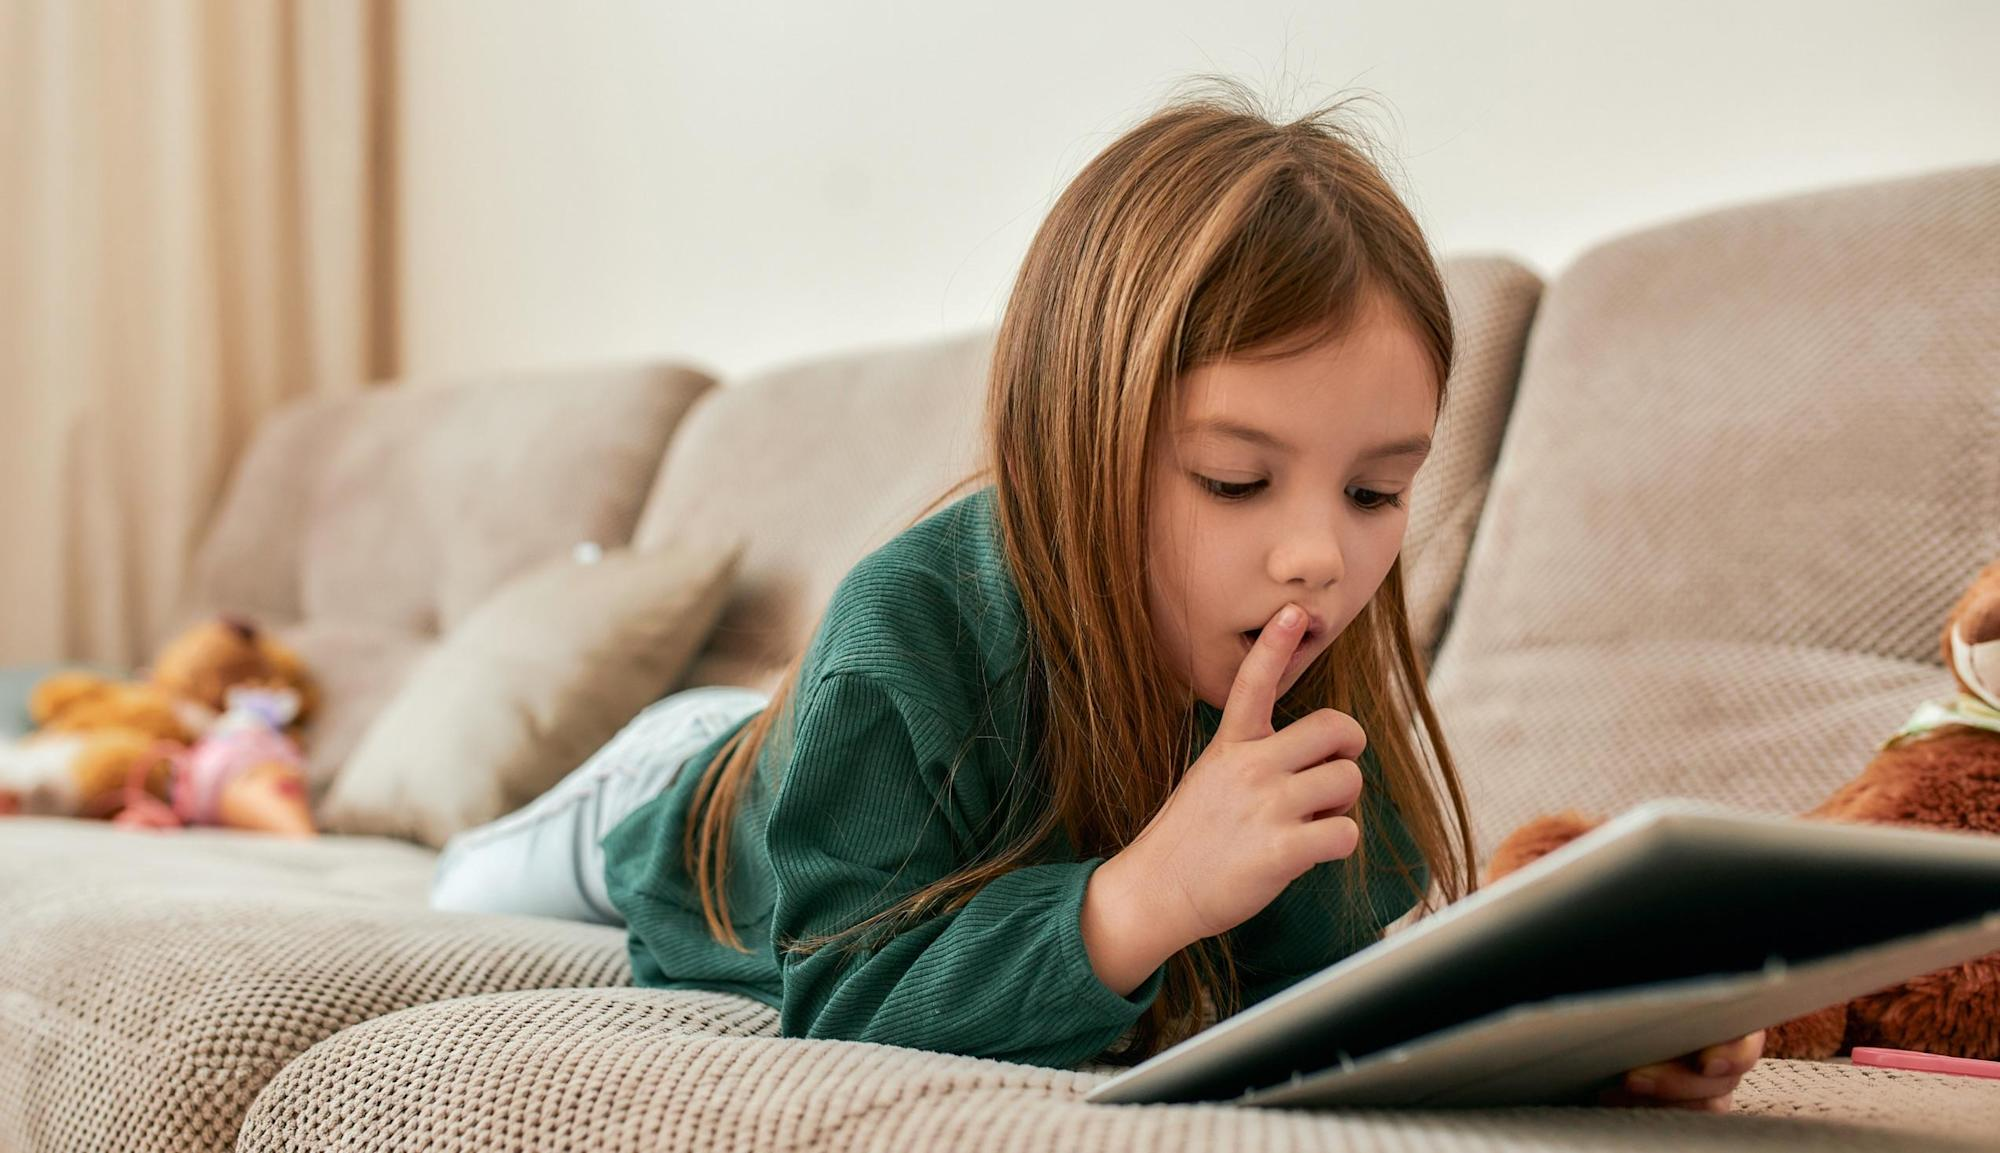 Tappity raises $1.3M for its interactive and educational video library for kids